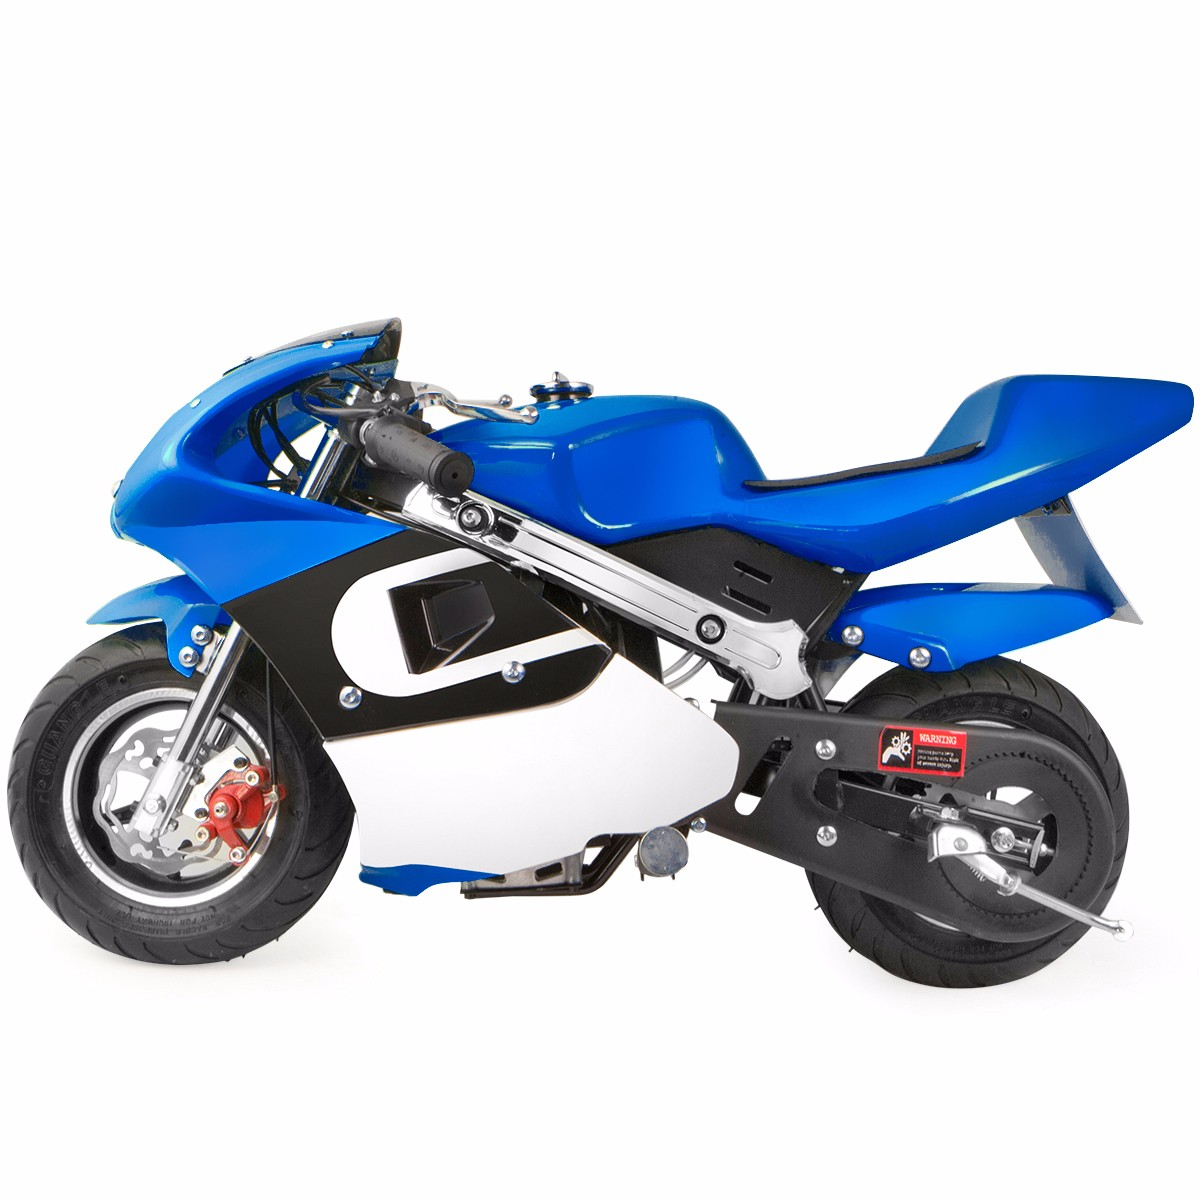 XtremepowerUS Gas Pocket Bike Motorcycle 40cc 4-stroke Engine, Blue by